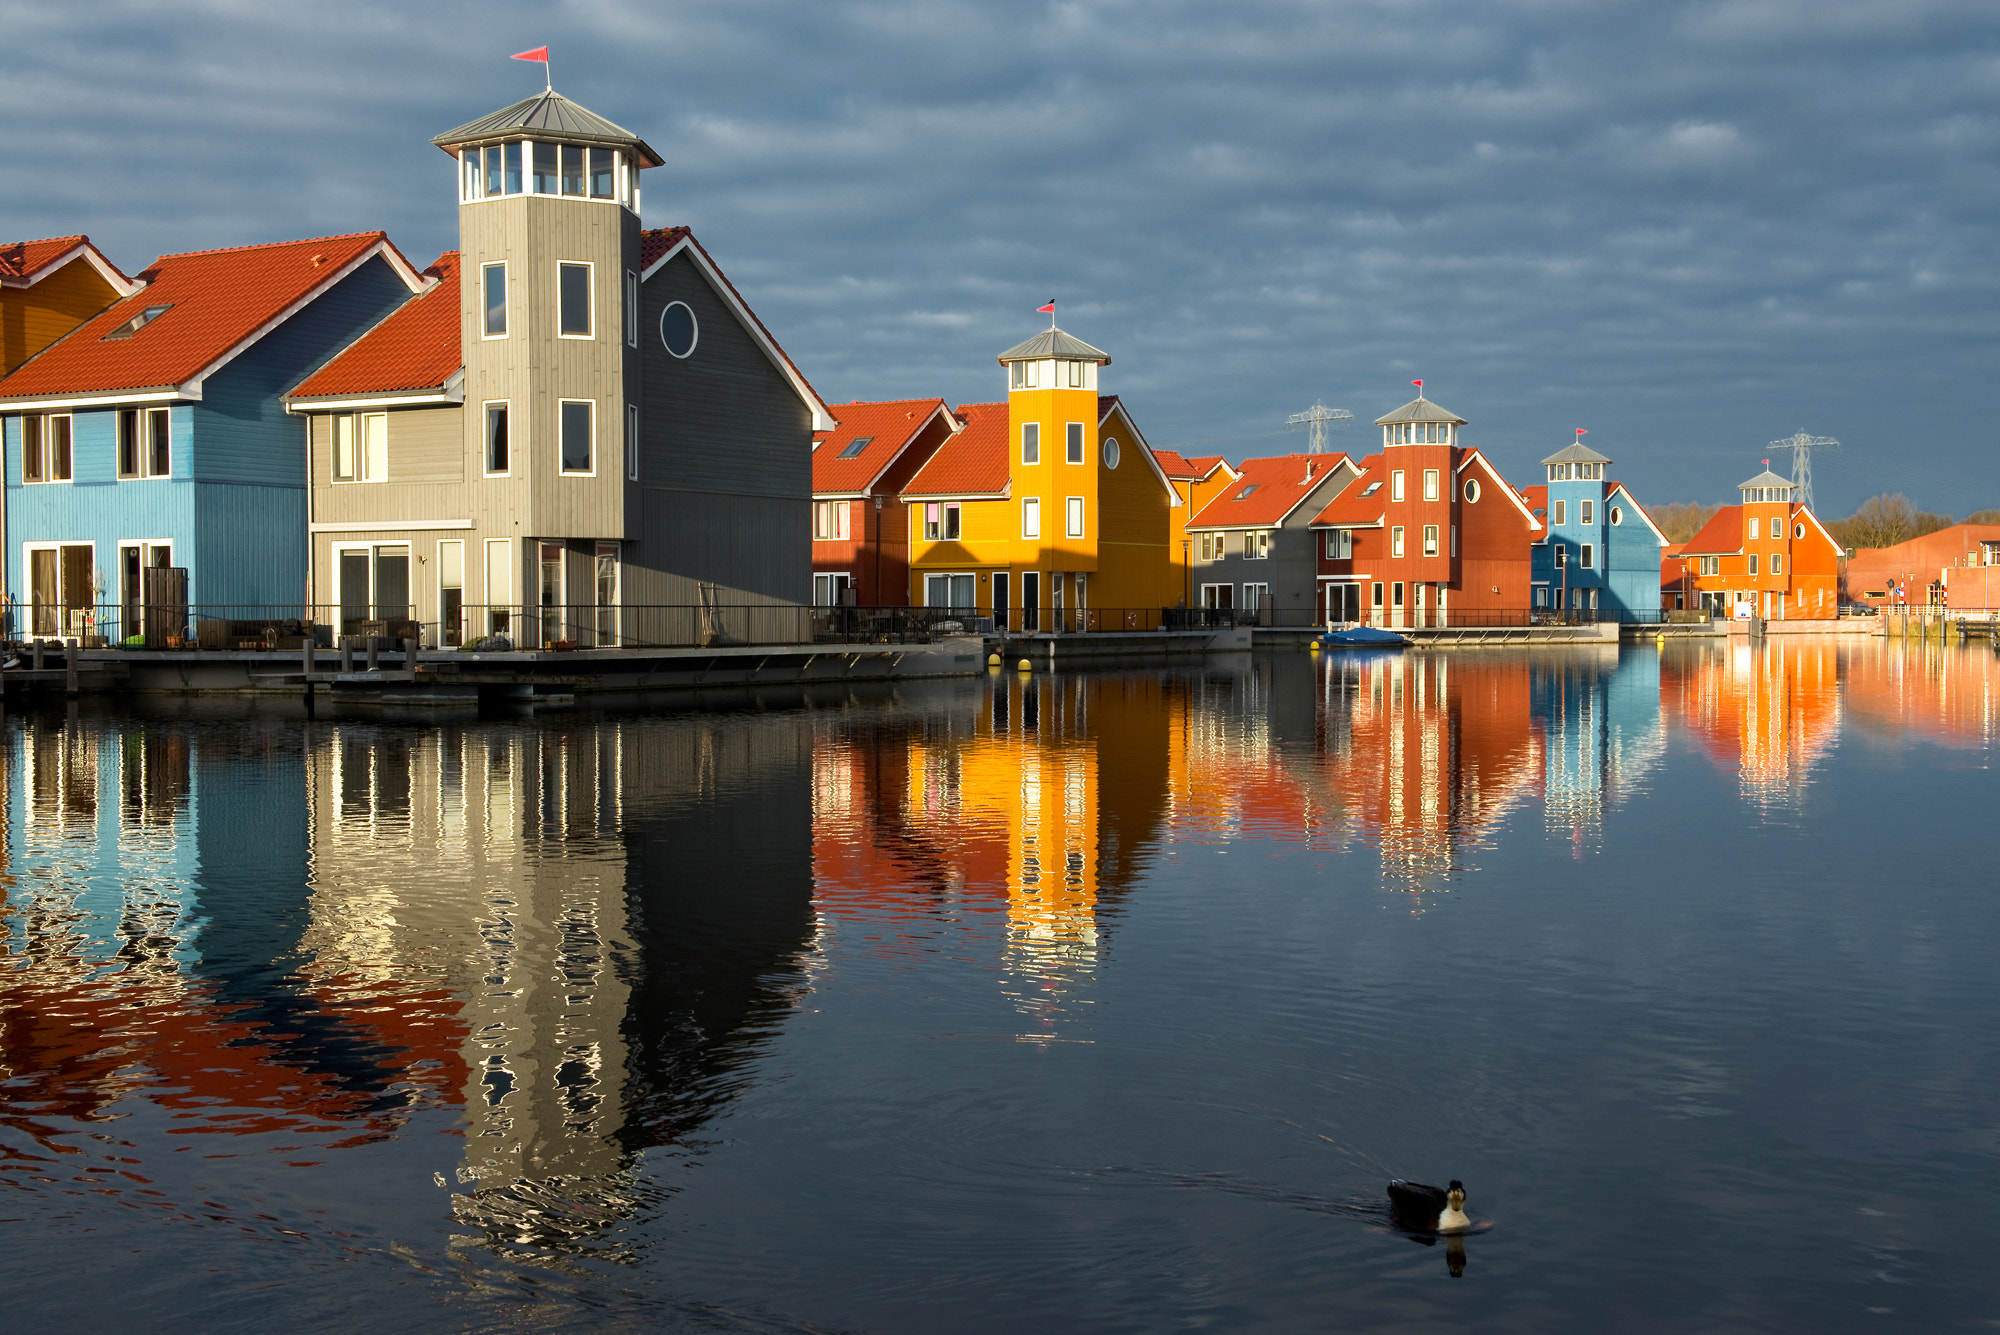 Photograph Life with Water by Daniel Bosma on 500px